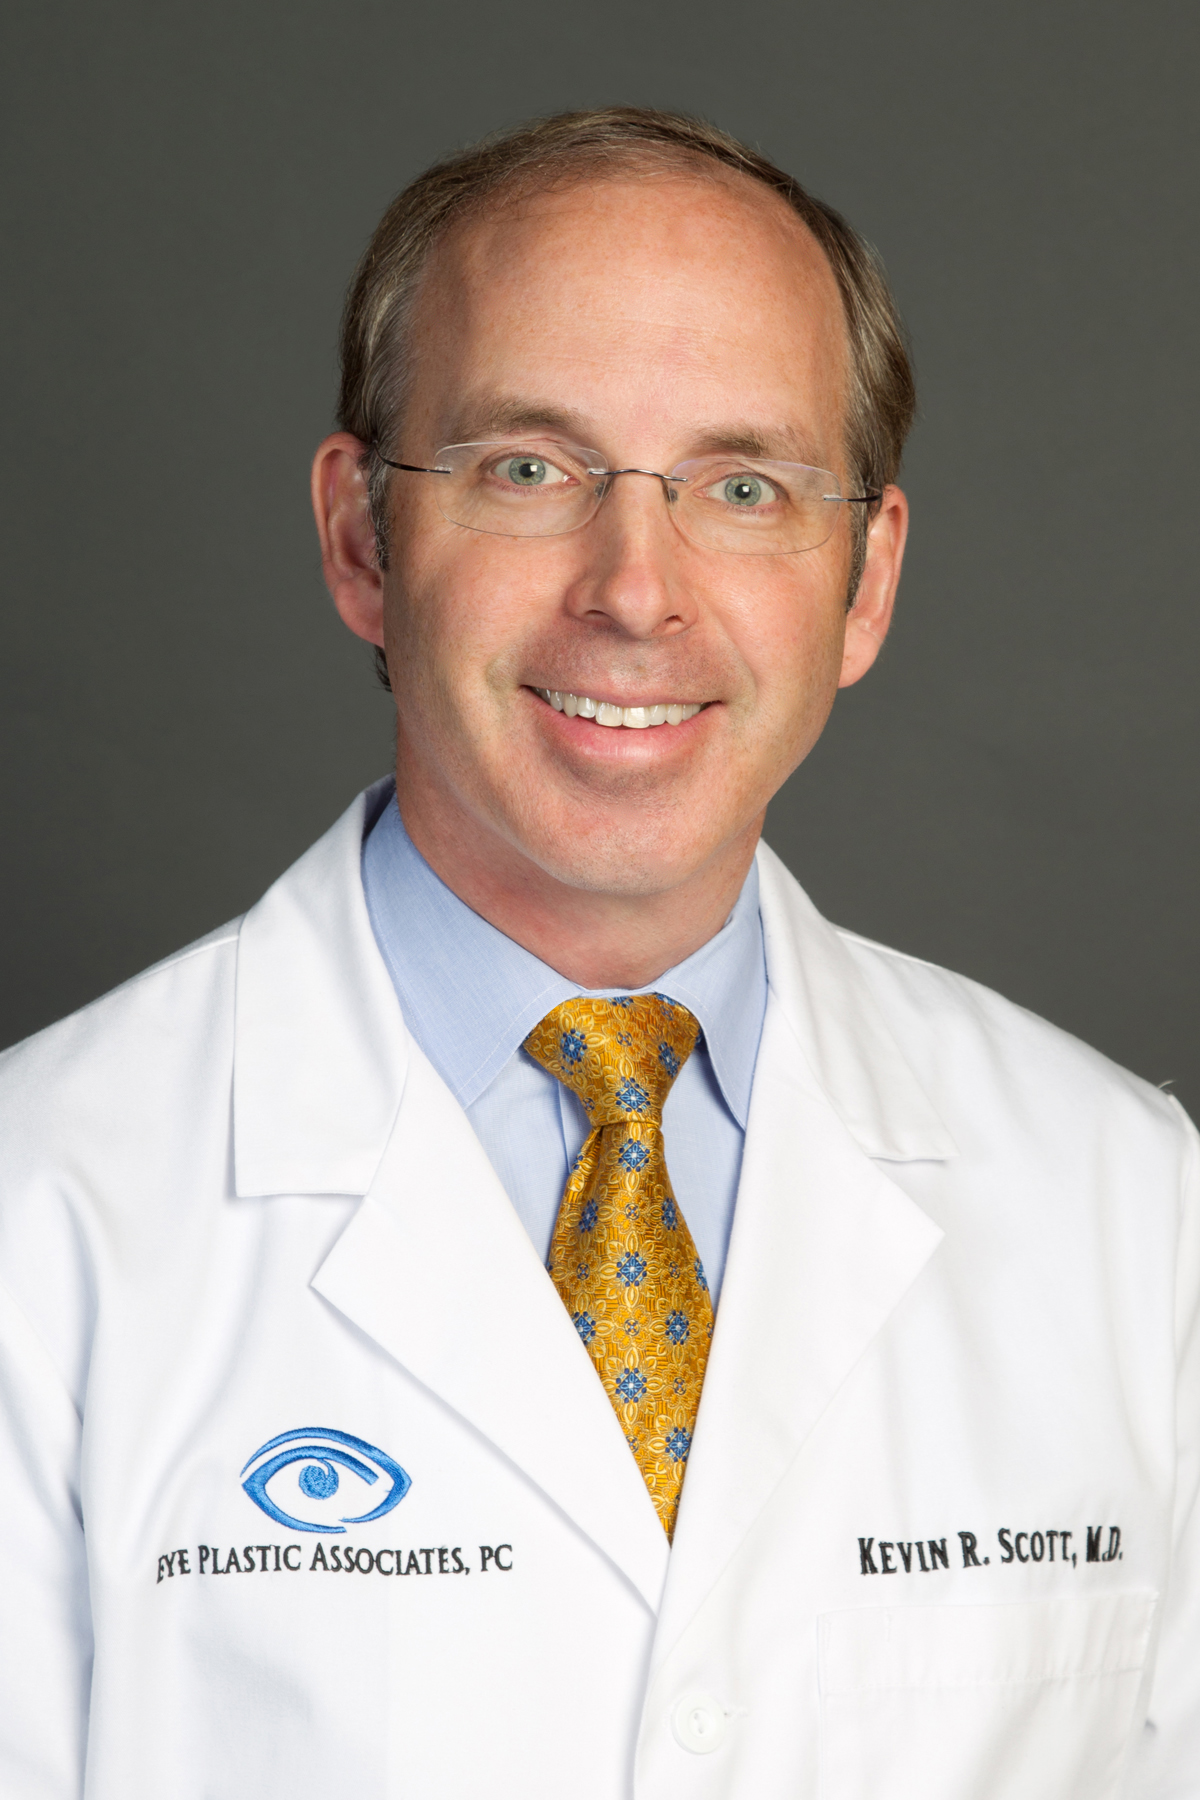 Kevin R Scott, MD